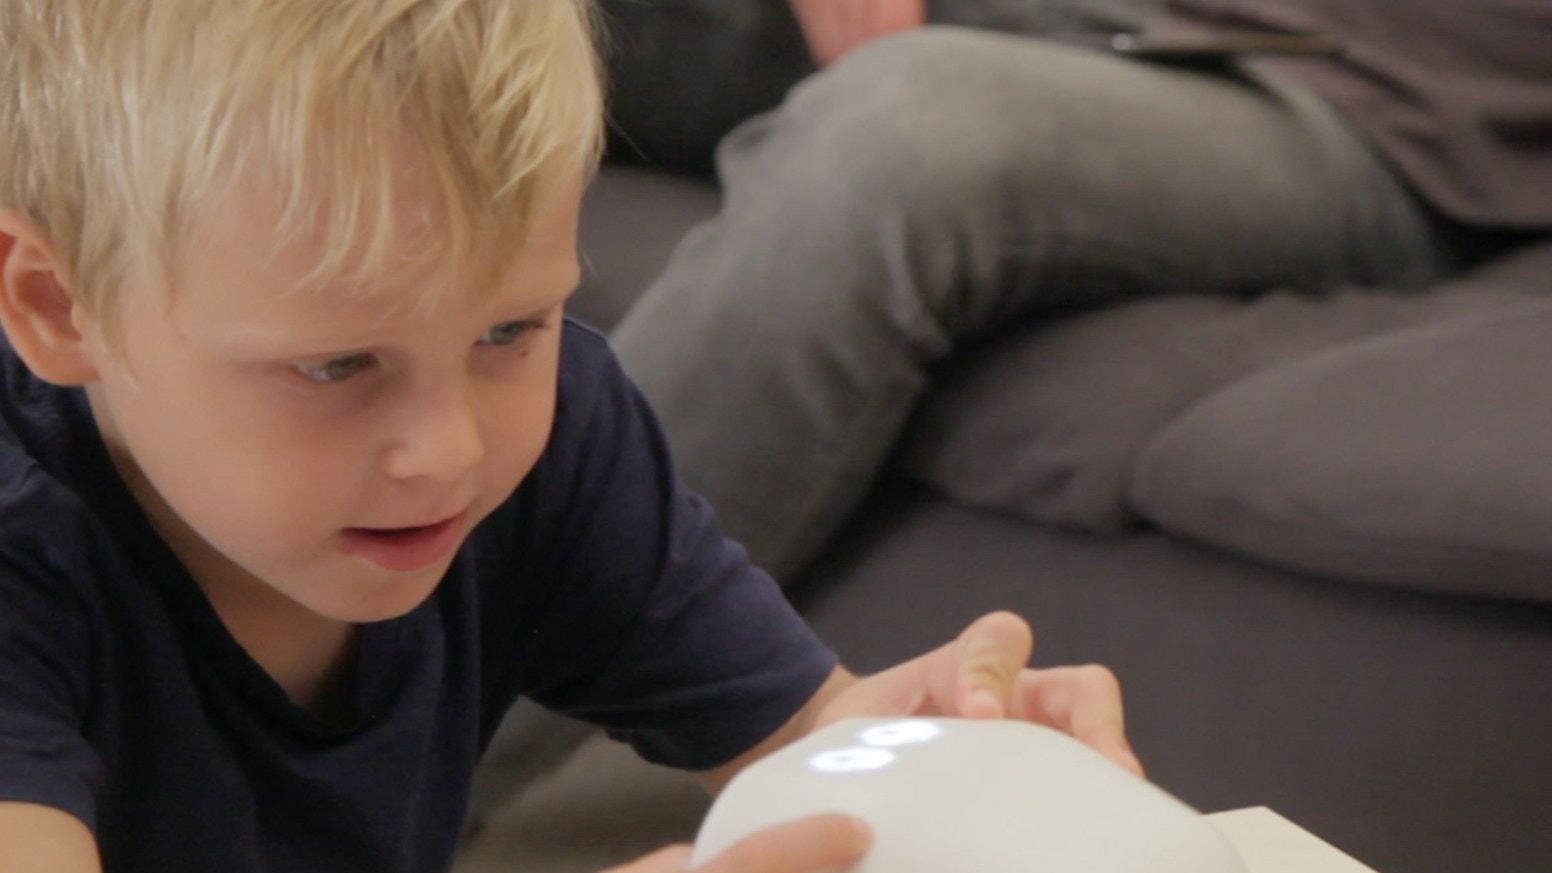 A piggy bank for the modern parents. ERNIT teaches children how to give, save and spend money wisely.